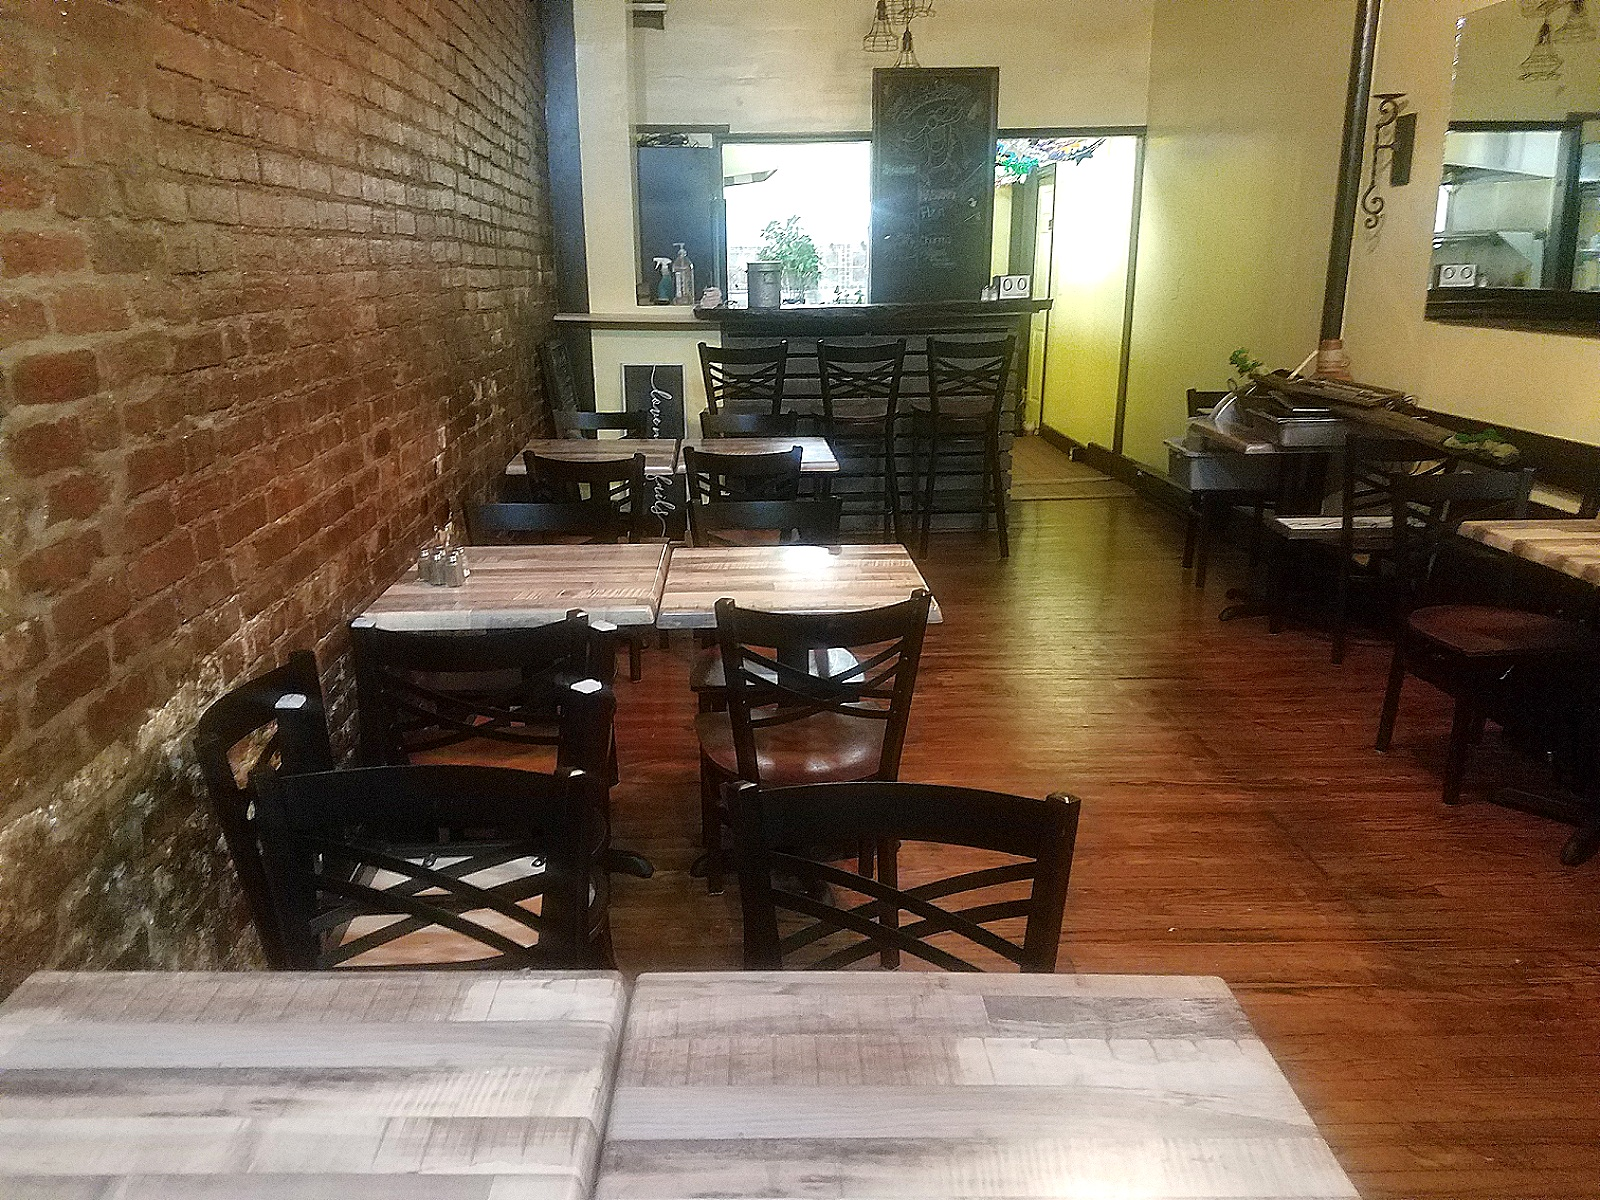 Village of Wappingers Commercial Cafe Space